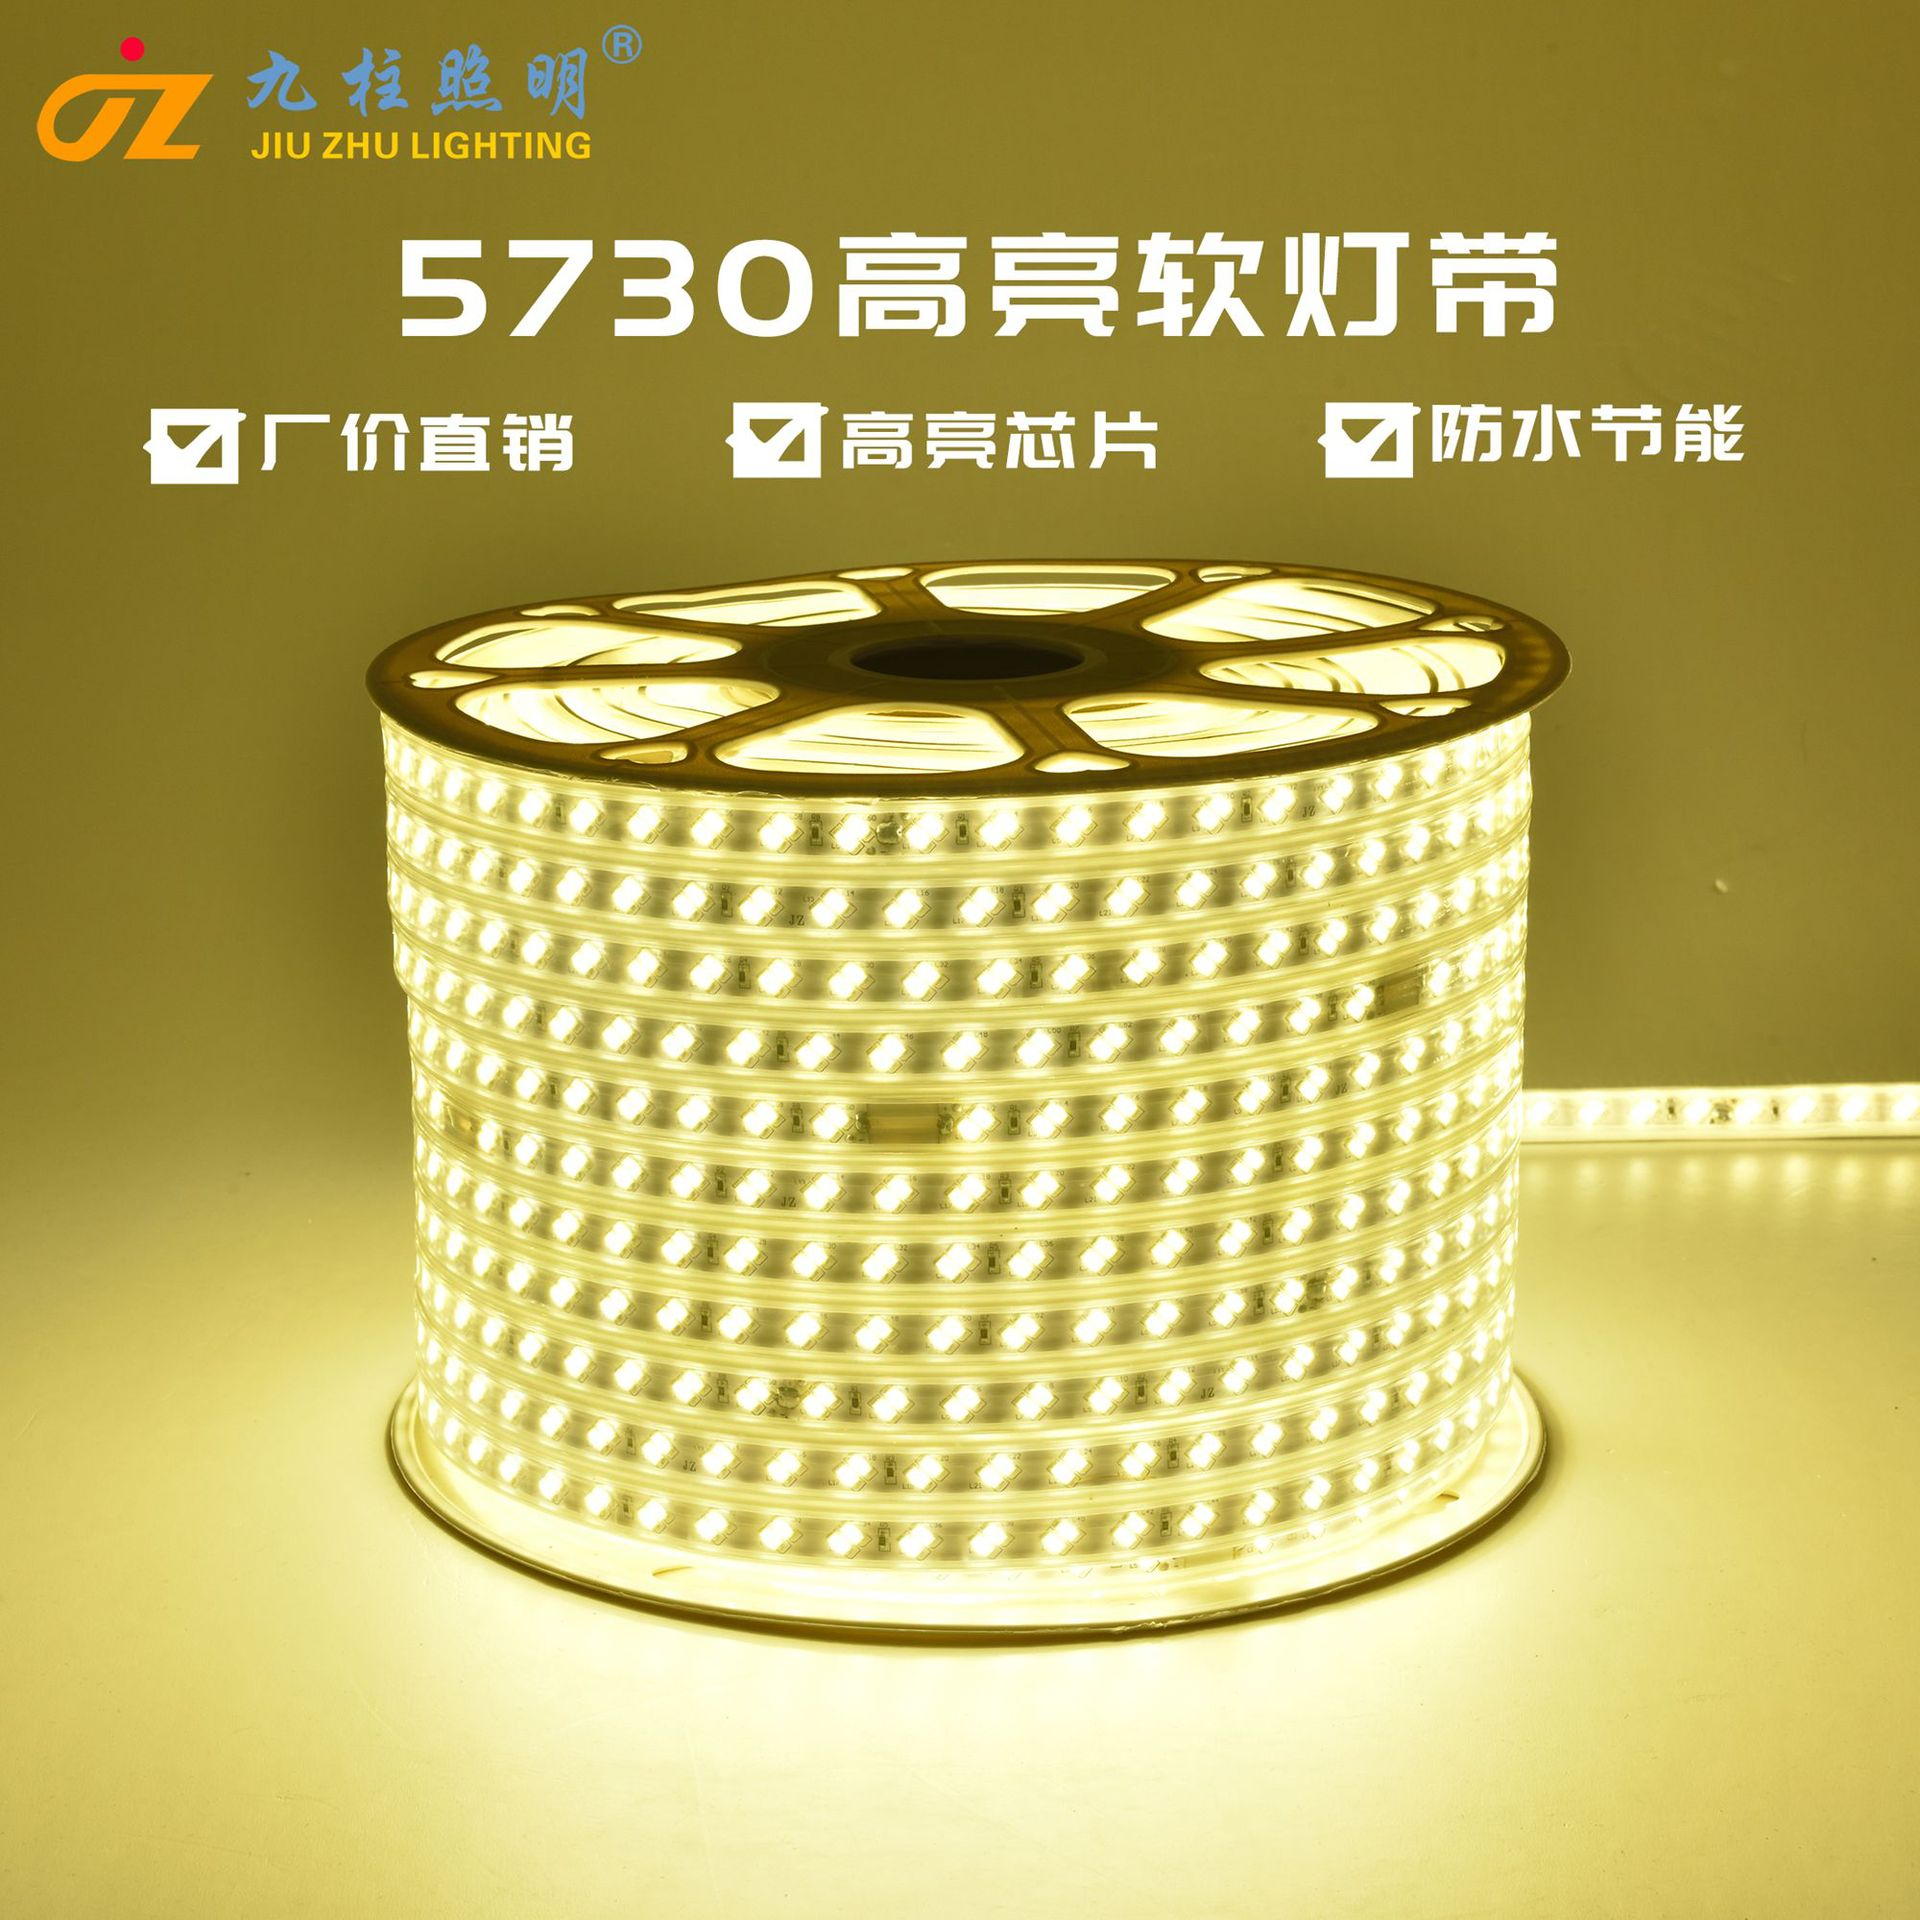 JIUZHU led lamp with 5730 patch home improvement ceiling decoration double row three rows 120 beads